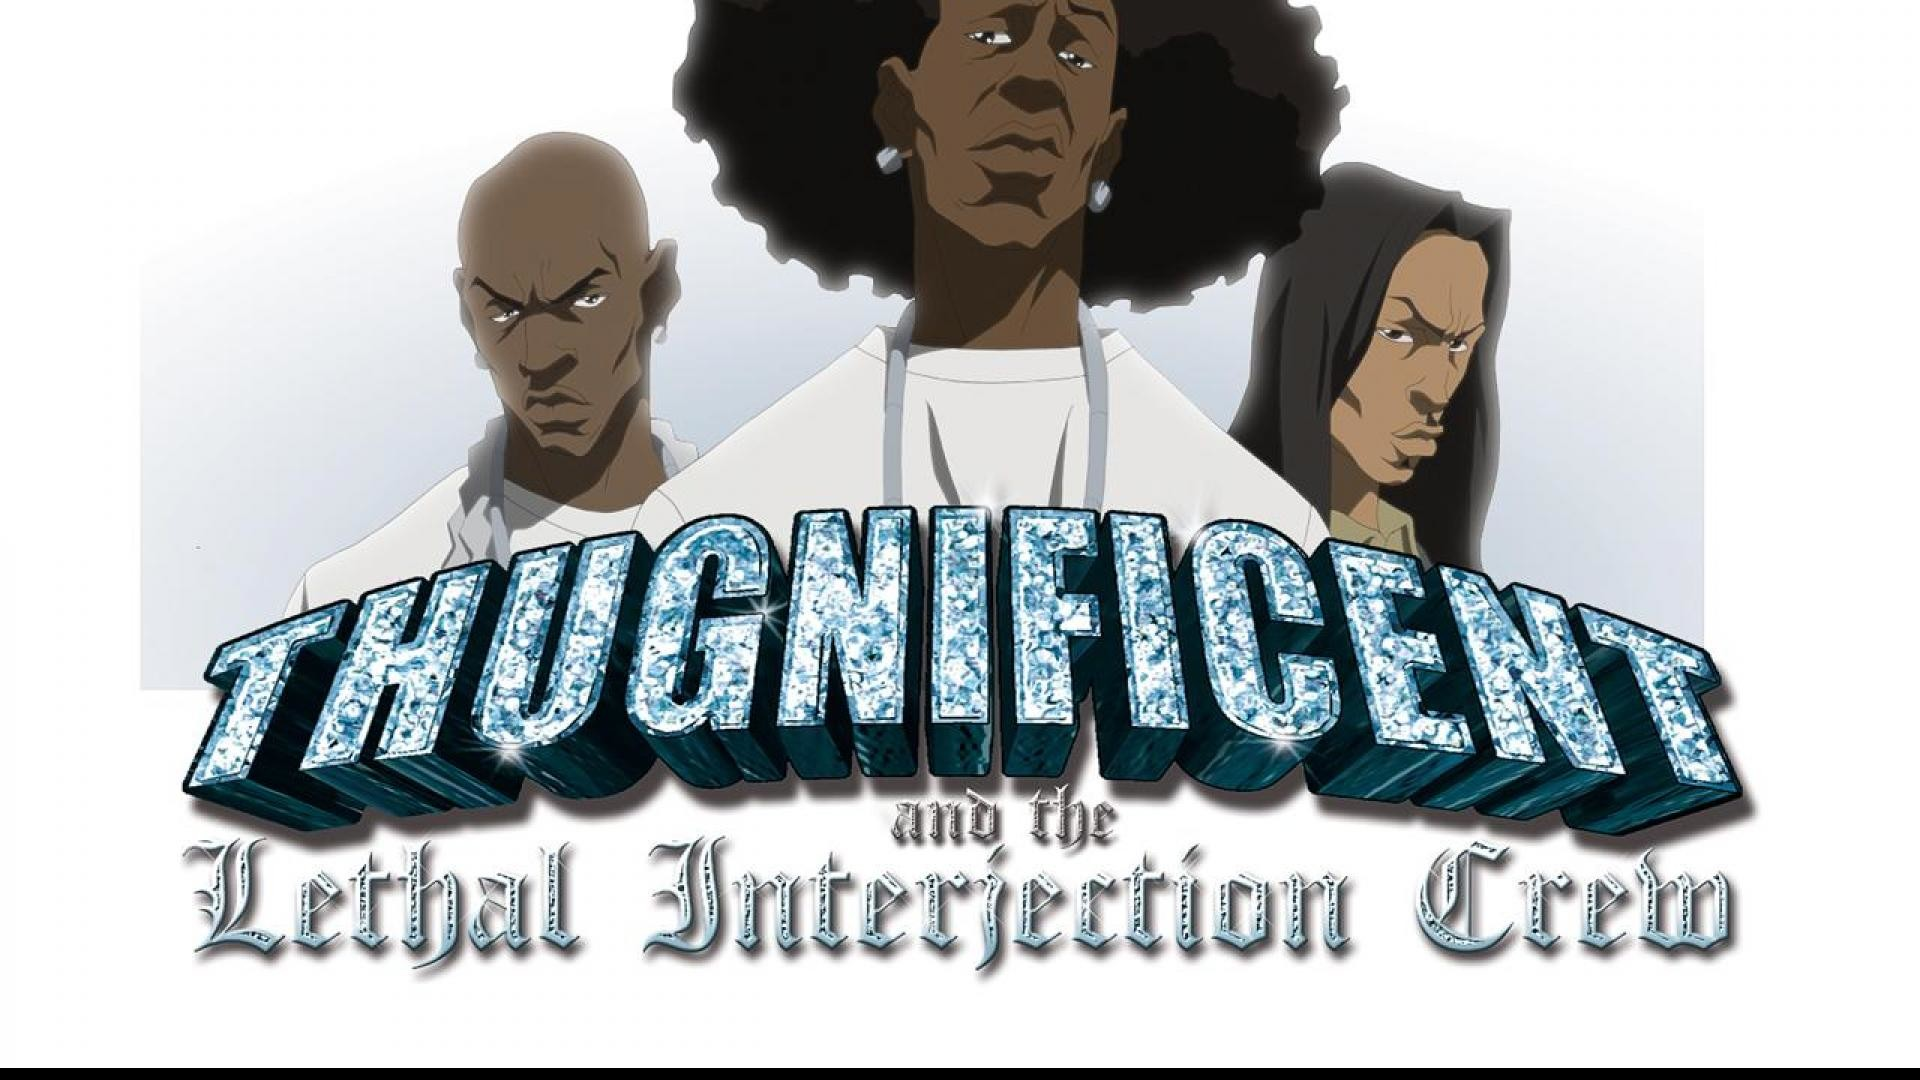 Download Free HQ Boondocks Wallpapers – hqwallbase.pw